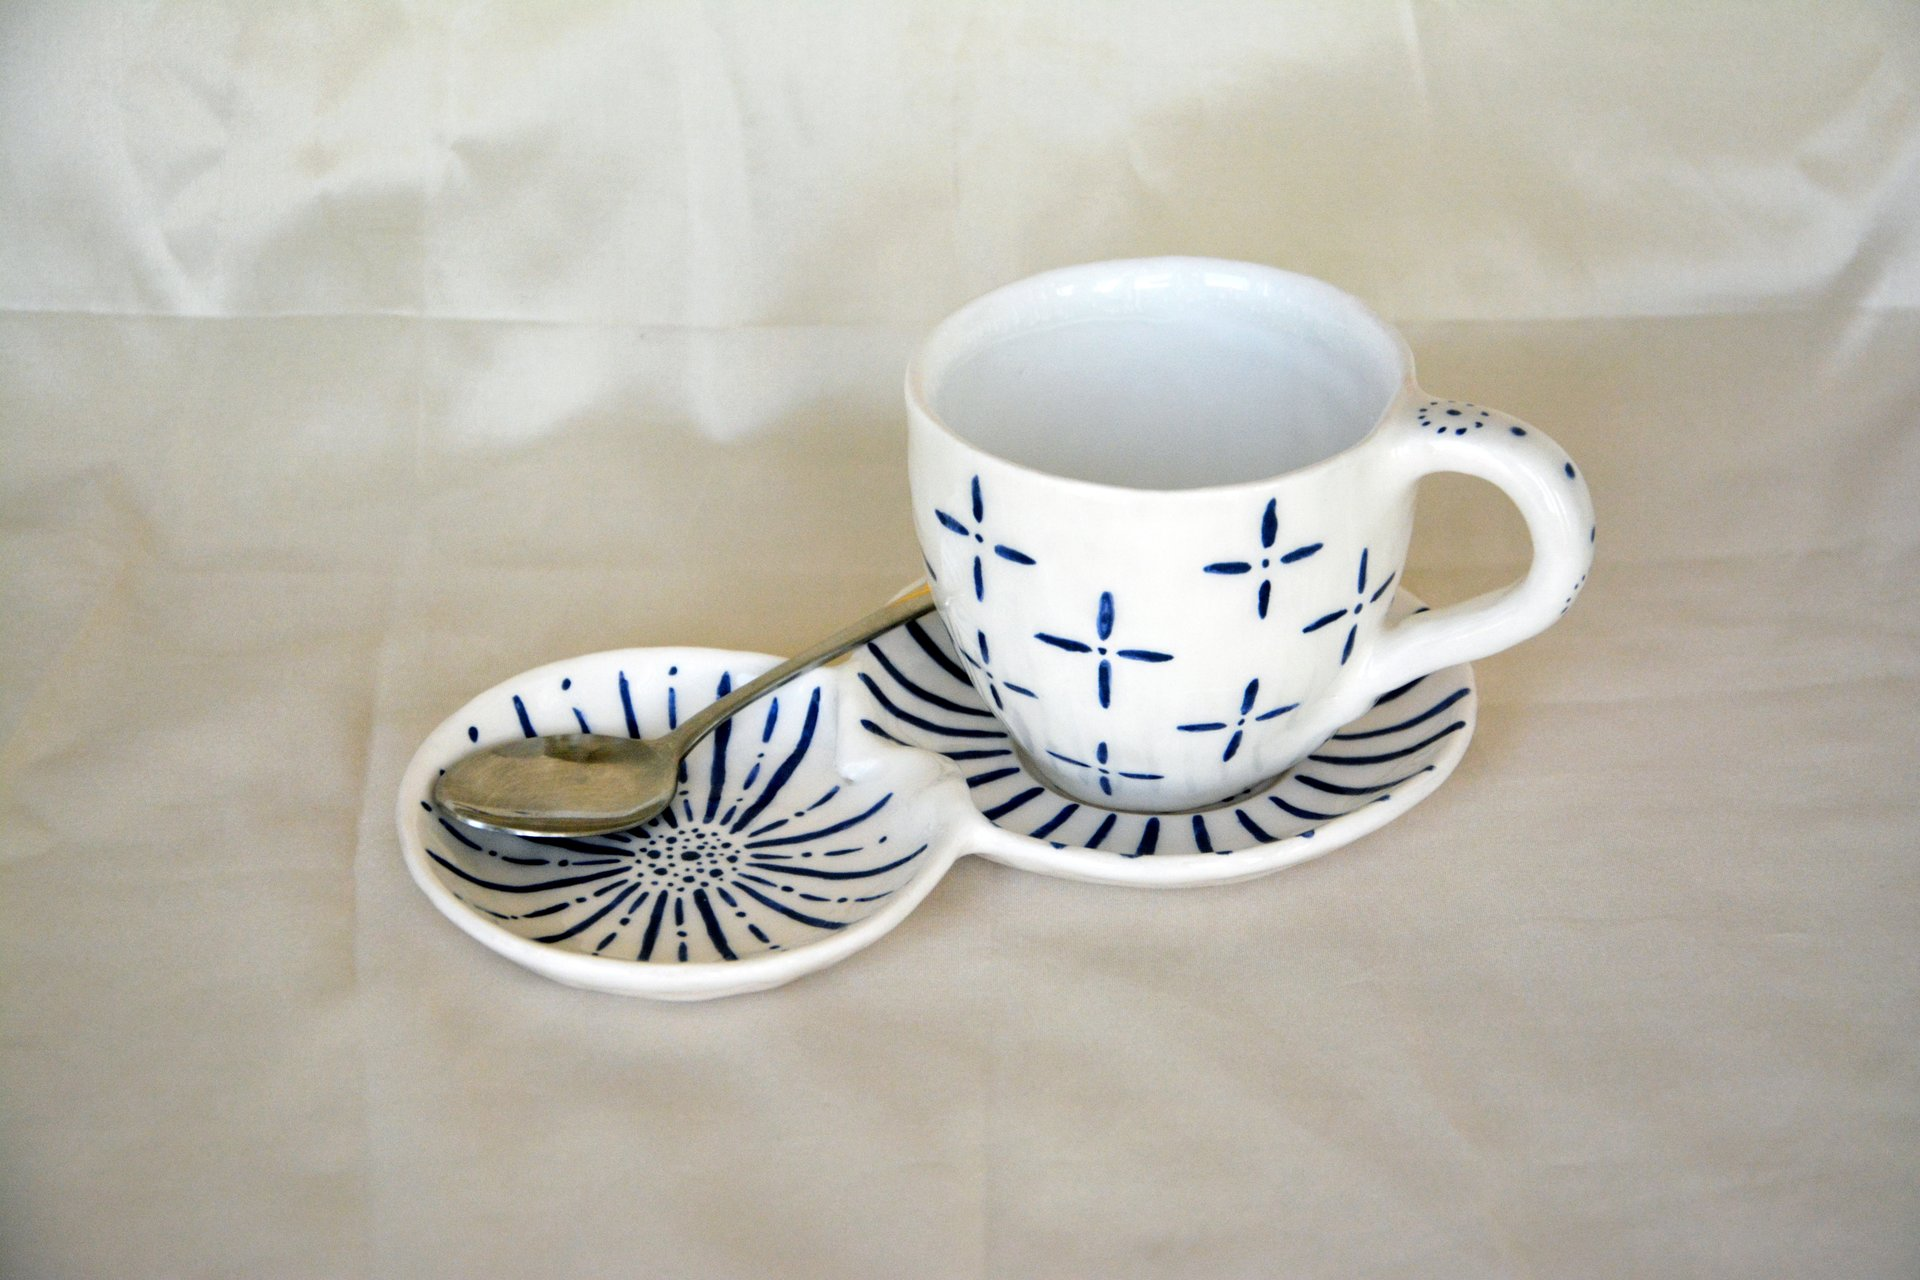 White with blue pattern Crosses - Cups, glasses, mugs, height - 7,5 cm, volume - 250 ml, photo 2 of 4.